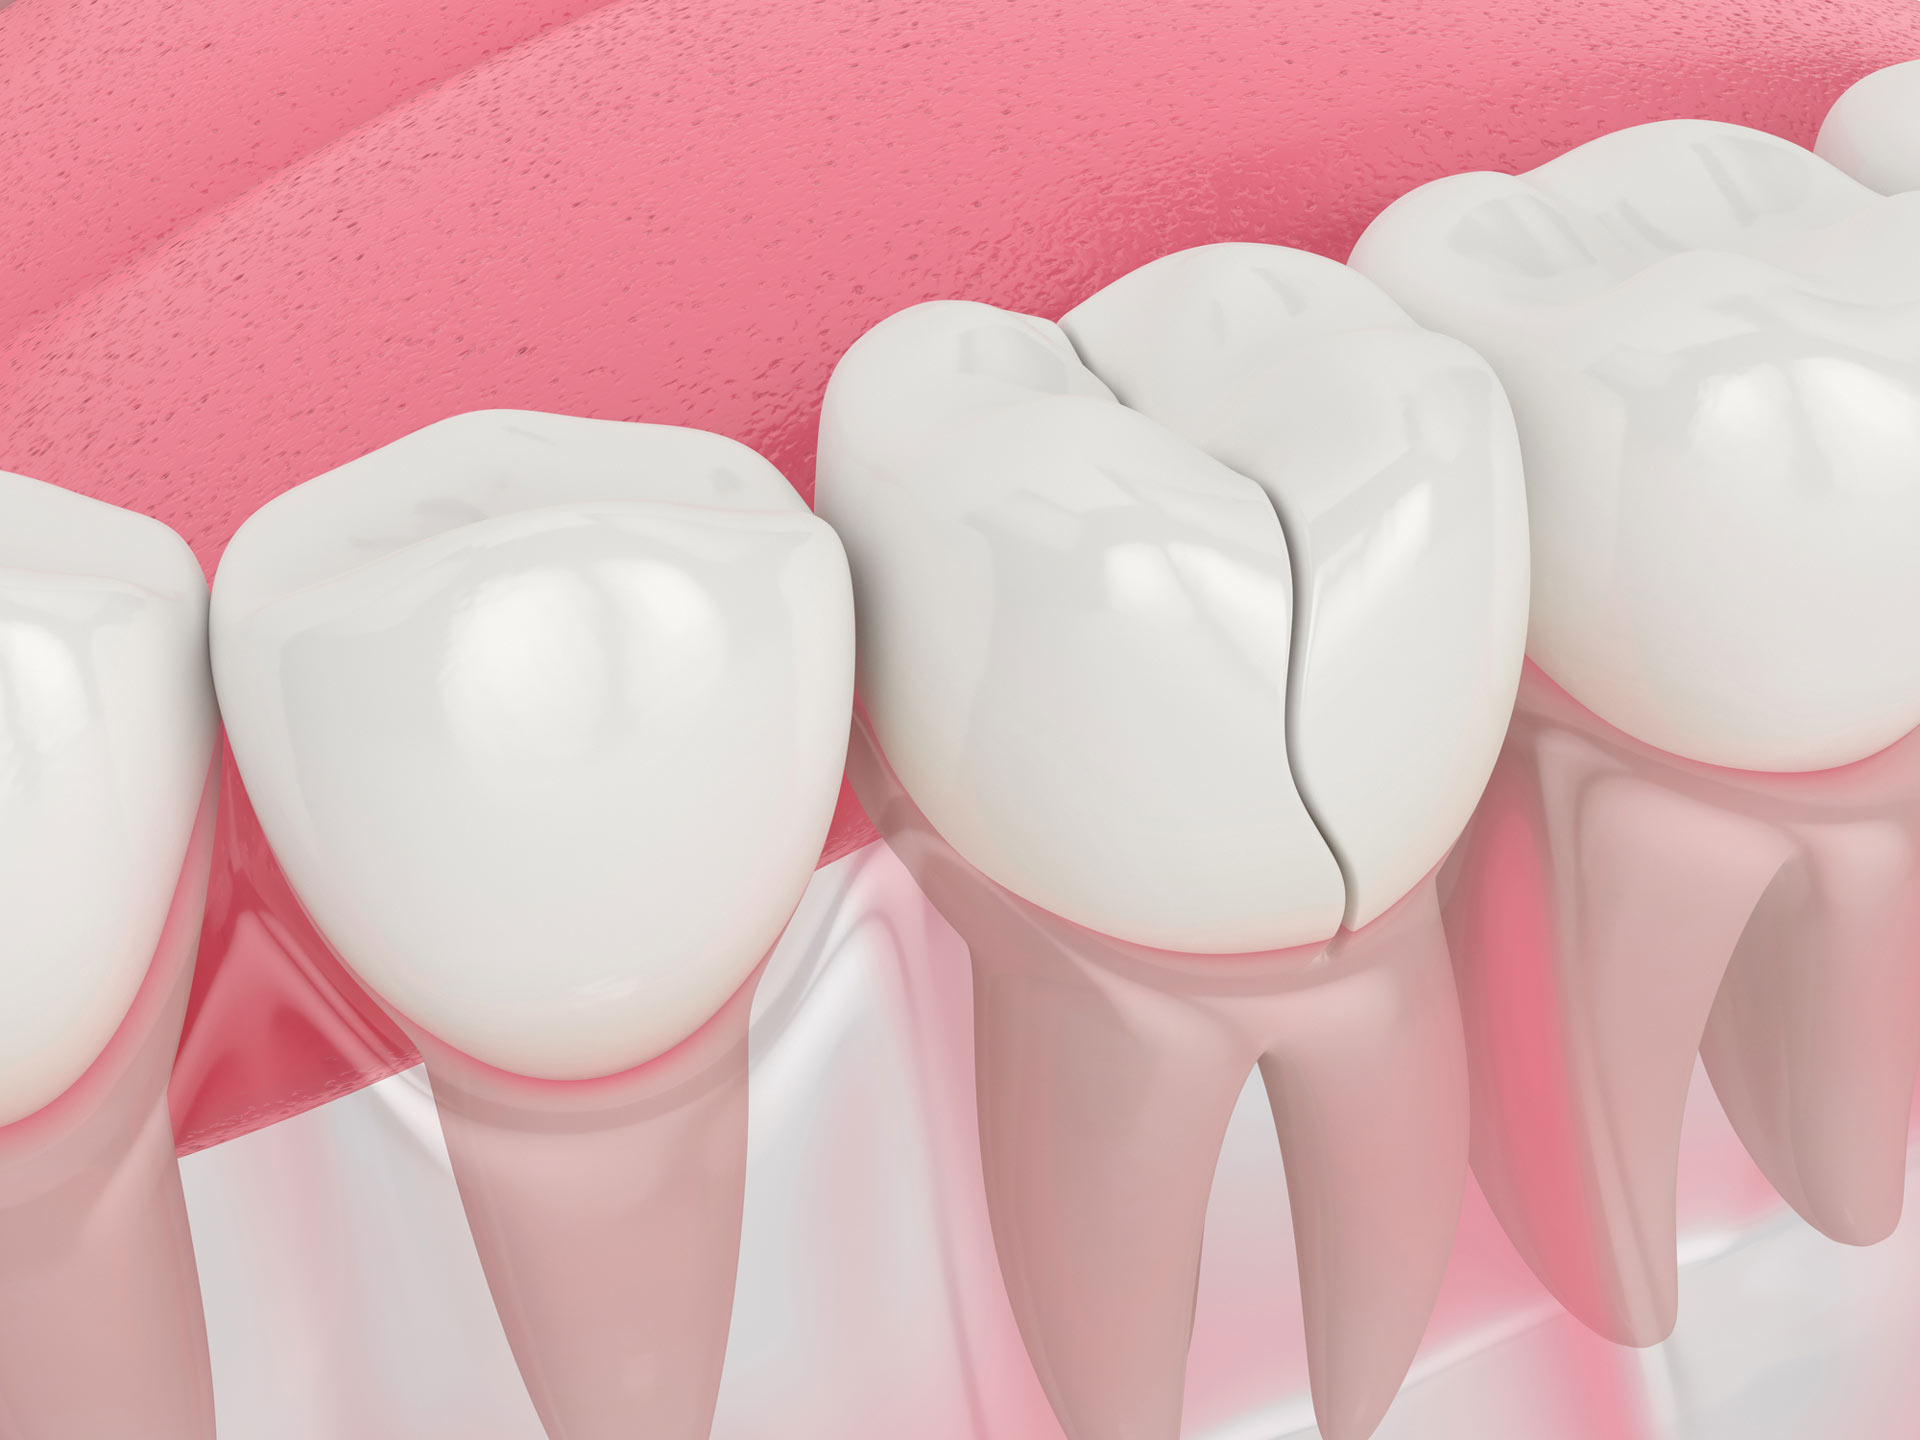 Treating a Chipped Tooth Instead of Extraction